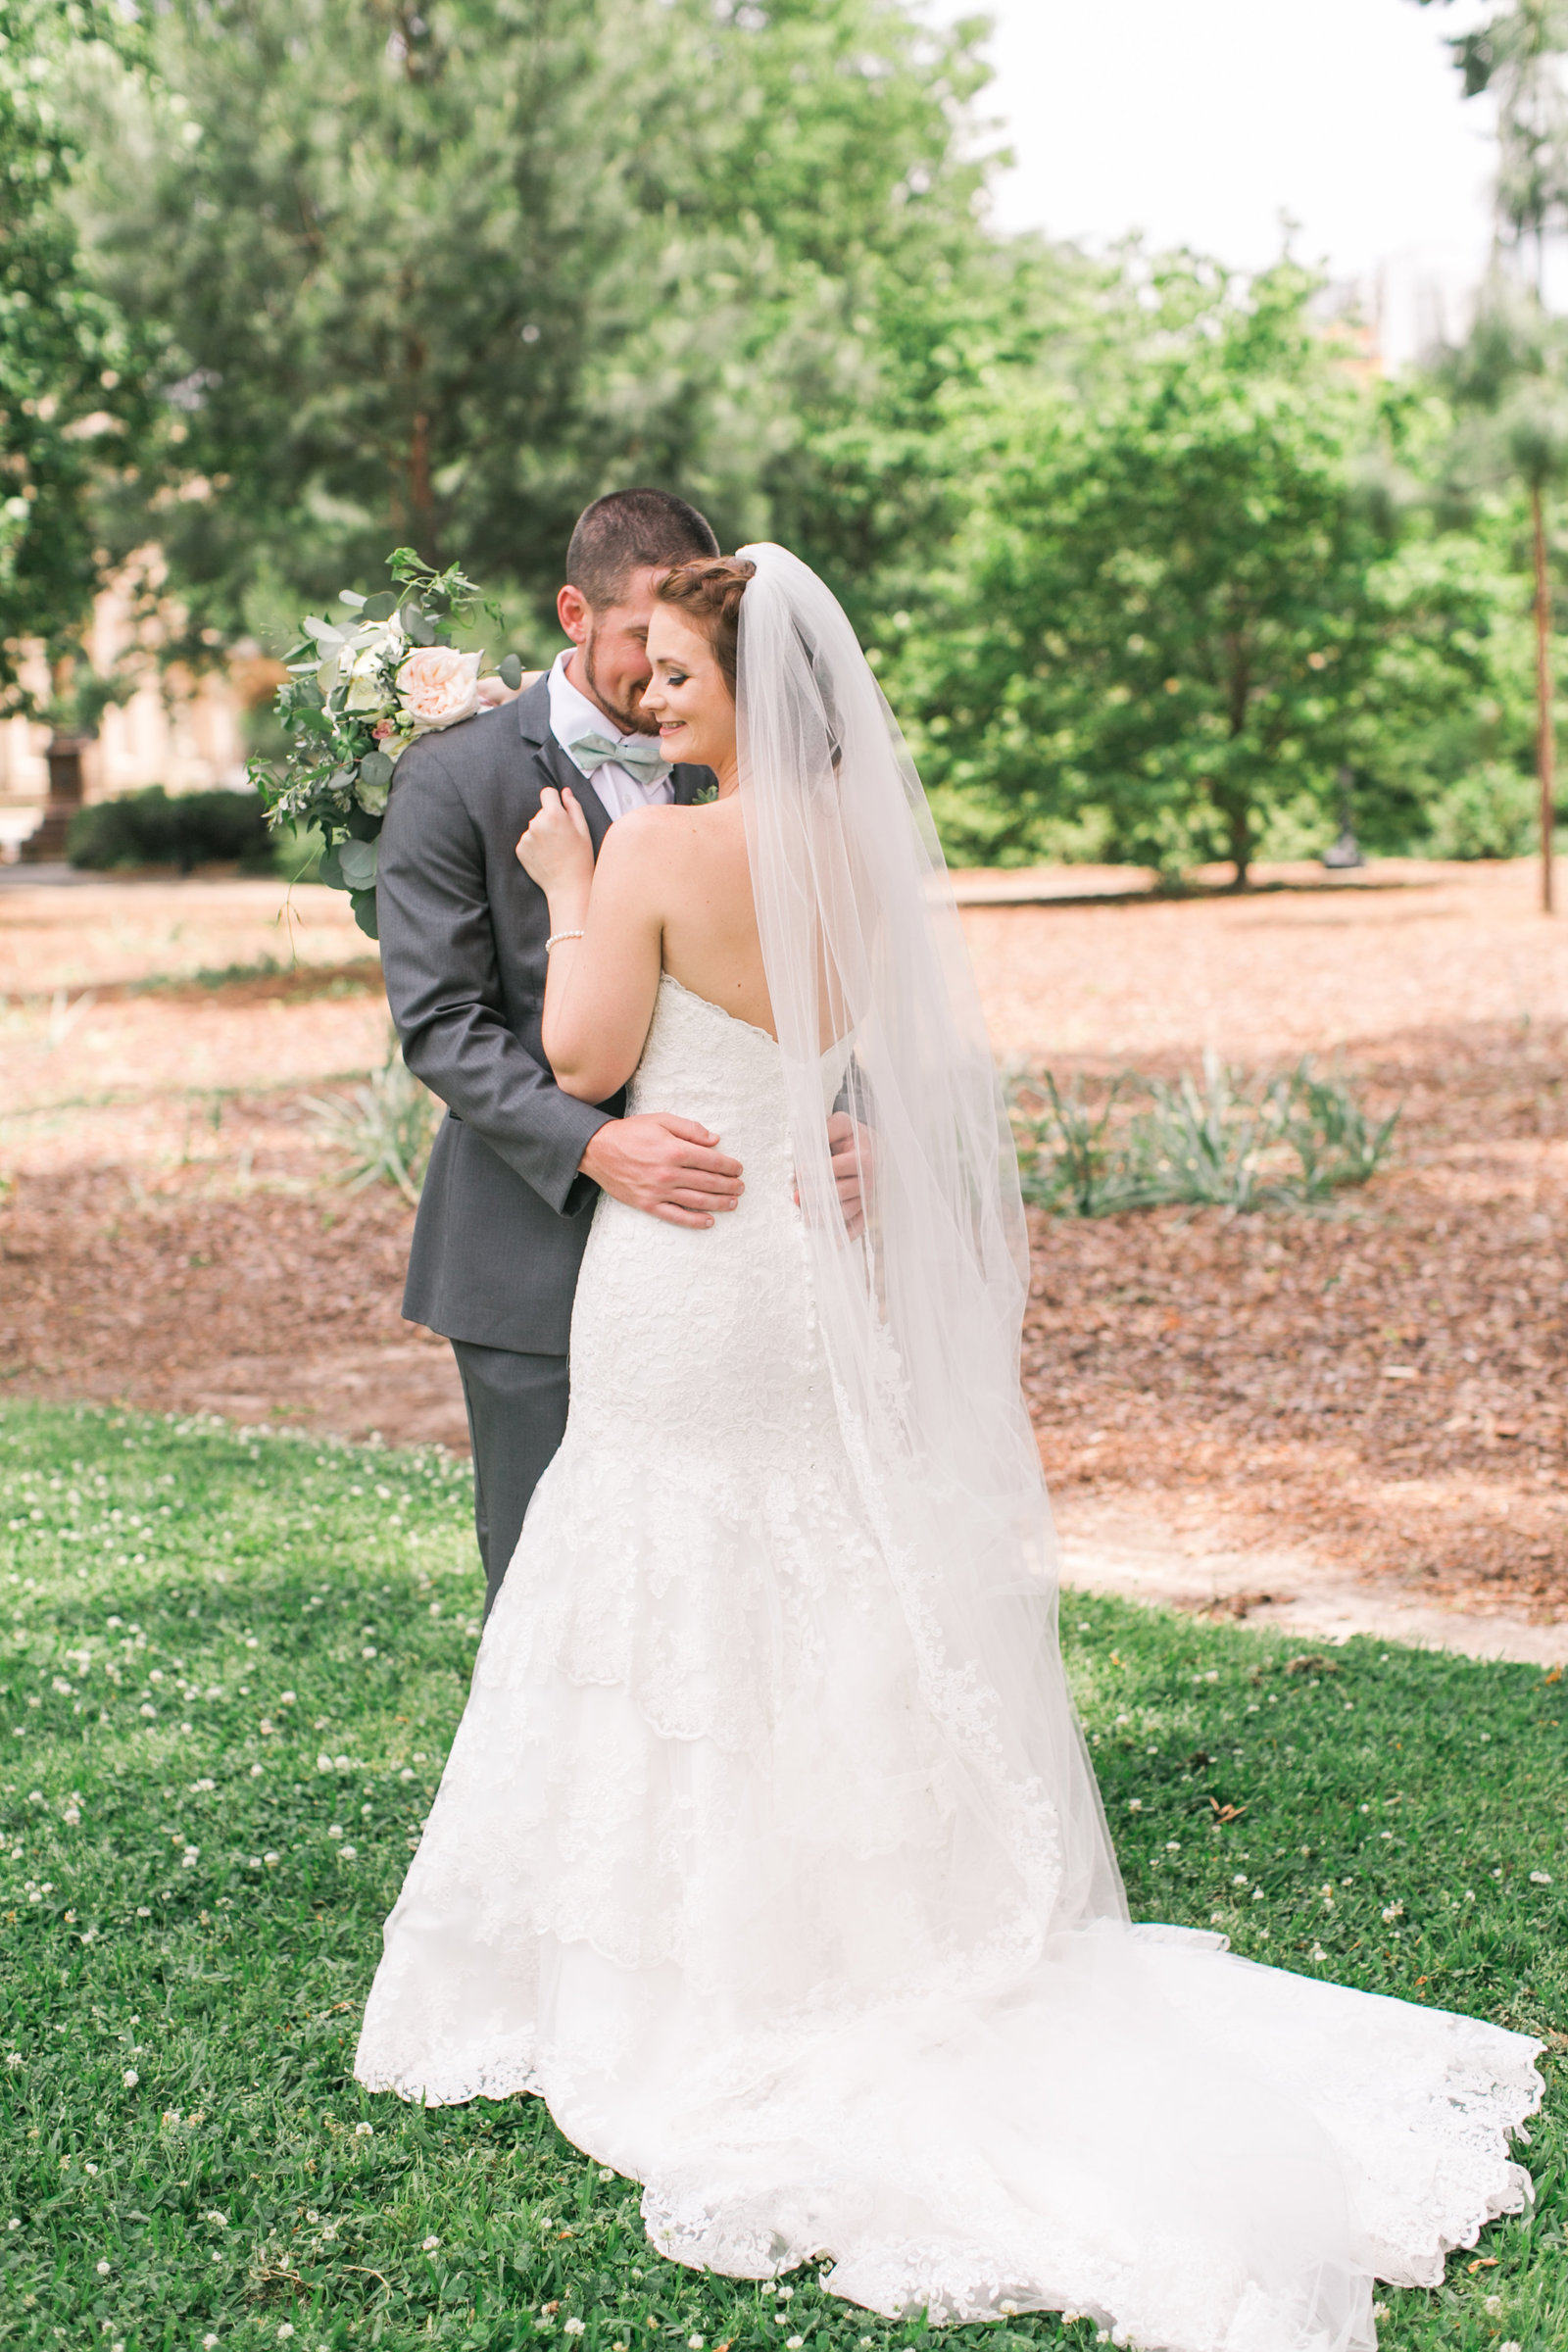 Groom holds bride above hips while she smiles and grabs his jacket